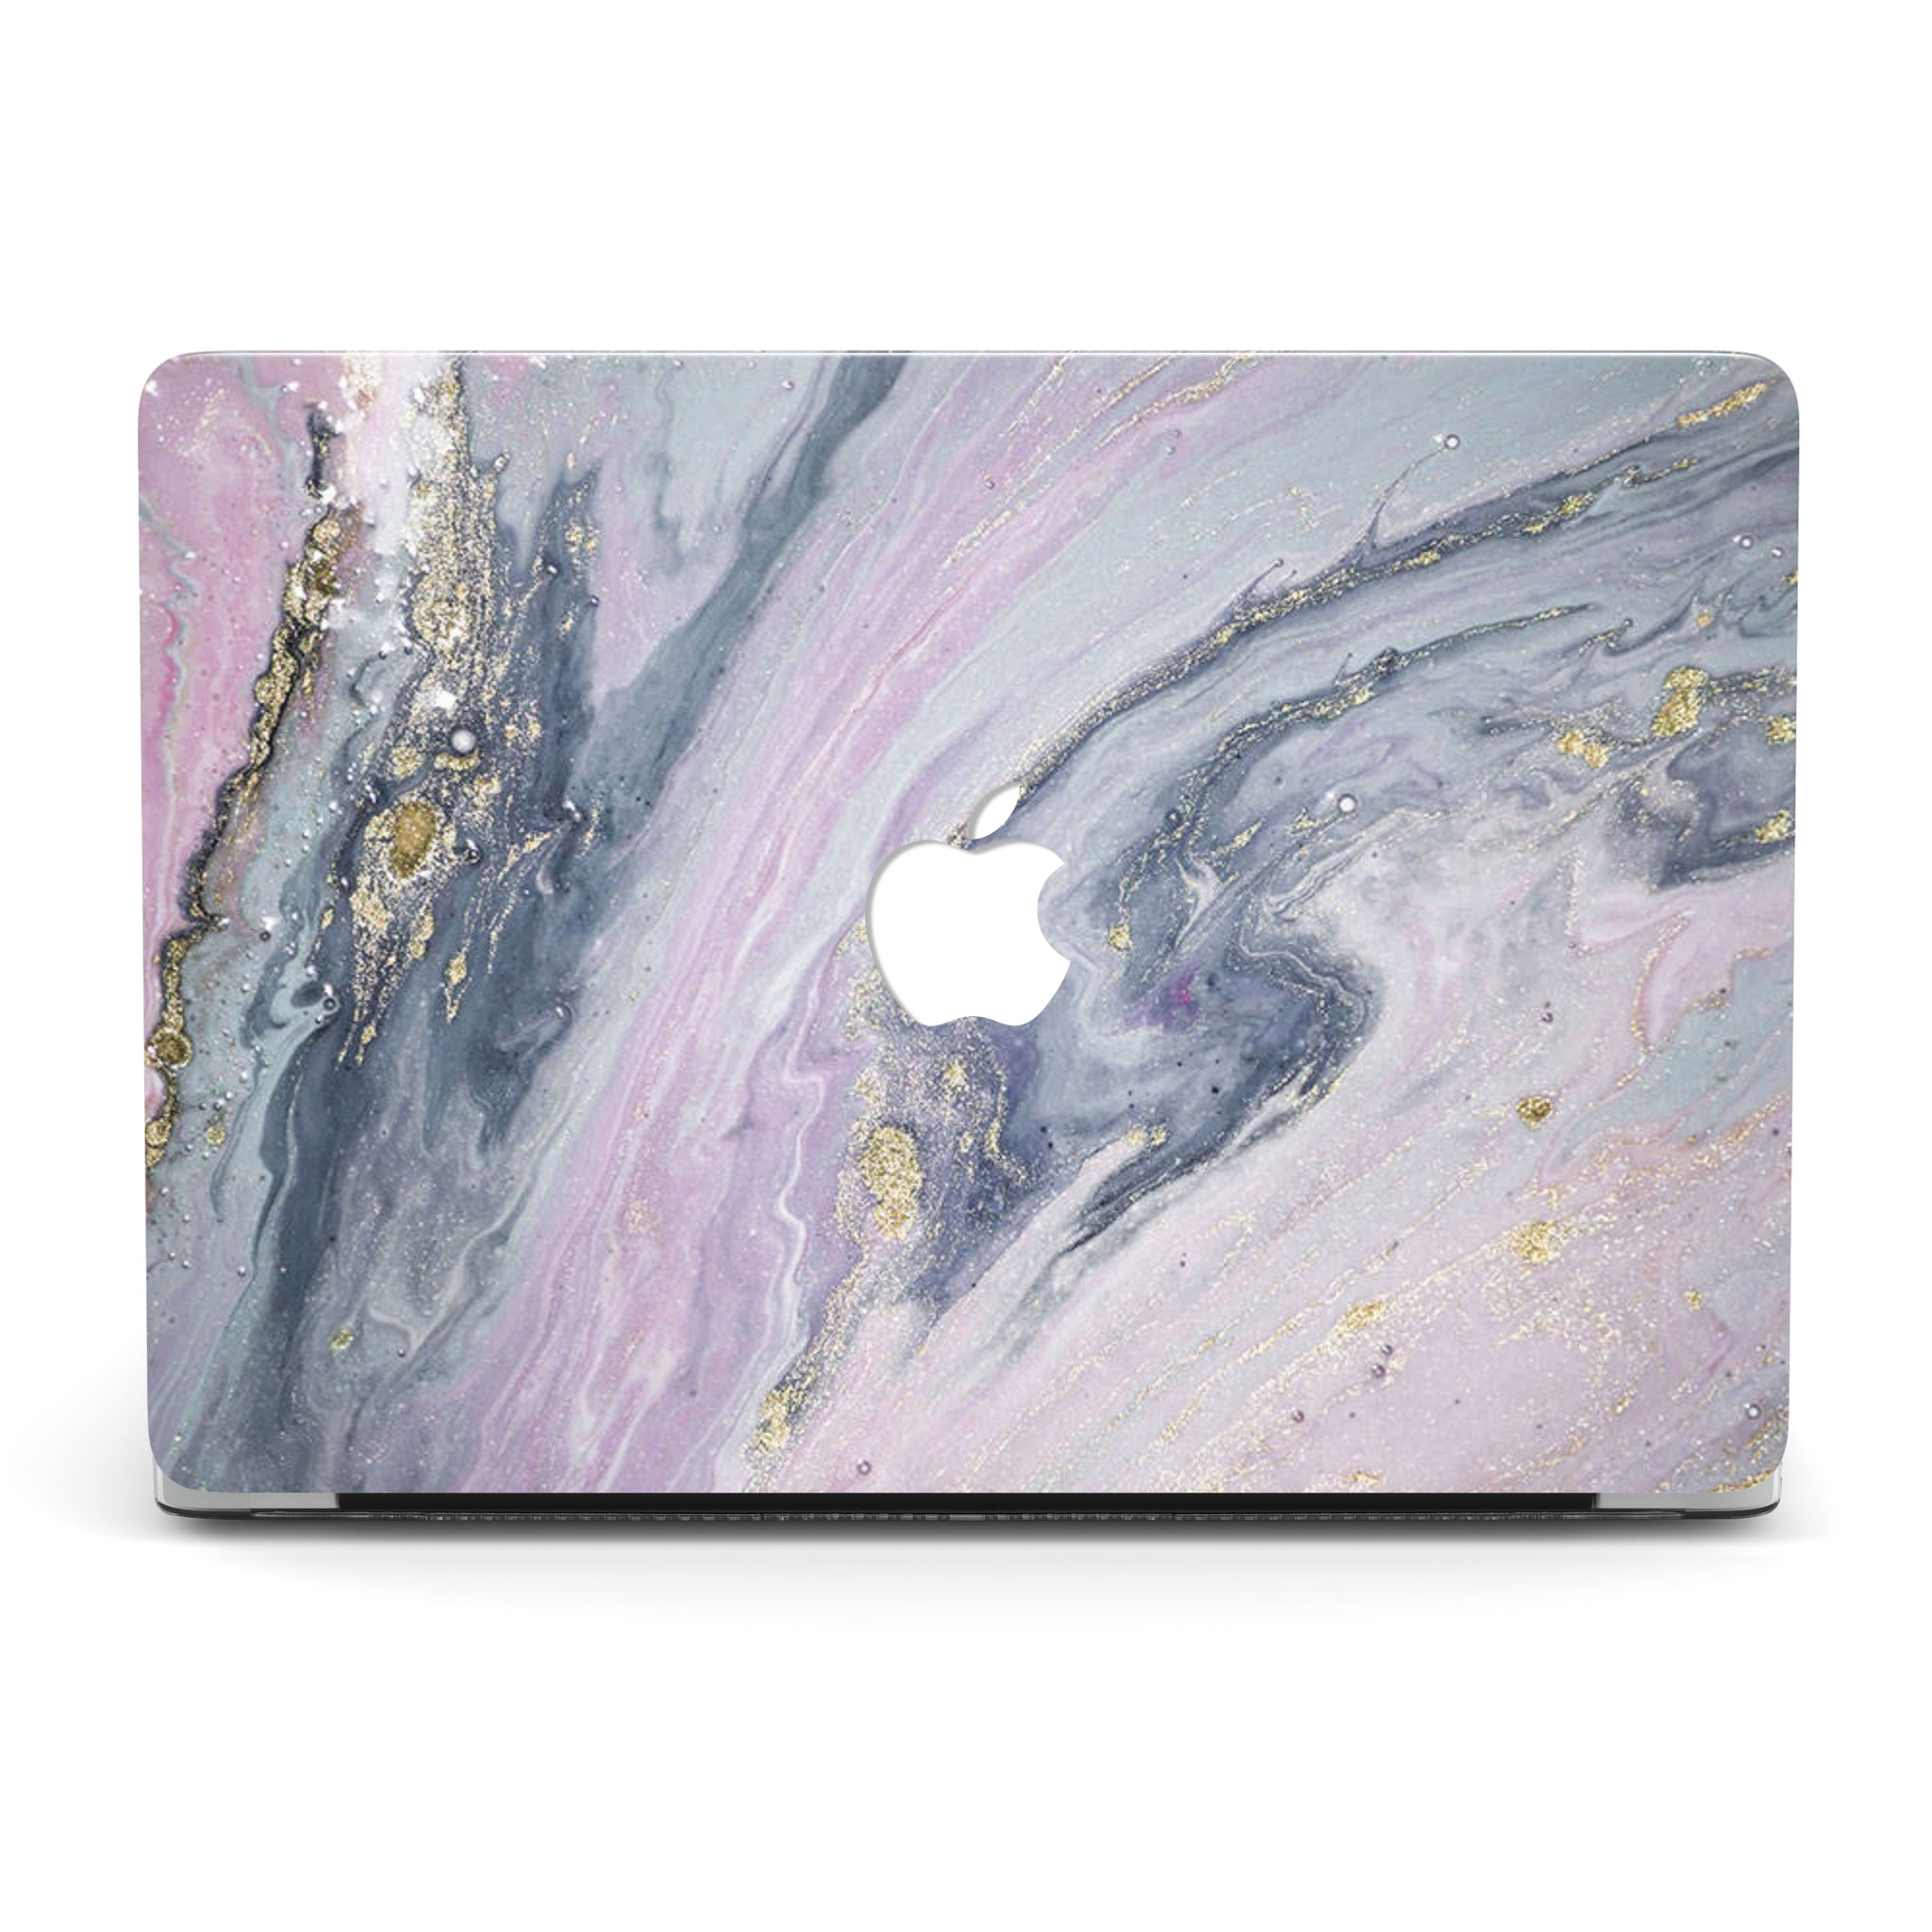 RASPBERRY SWIRLS MARBLE MACBOOK CASE